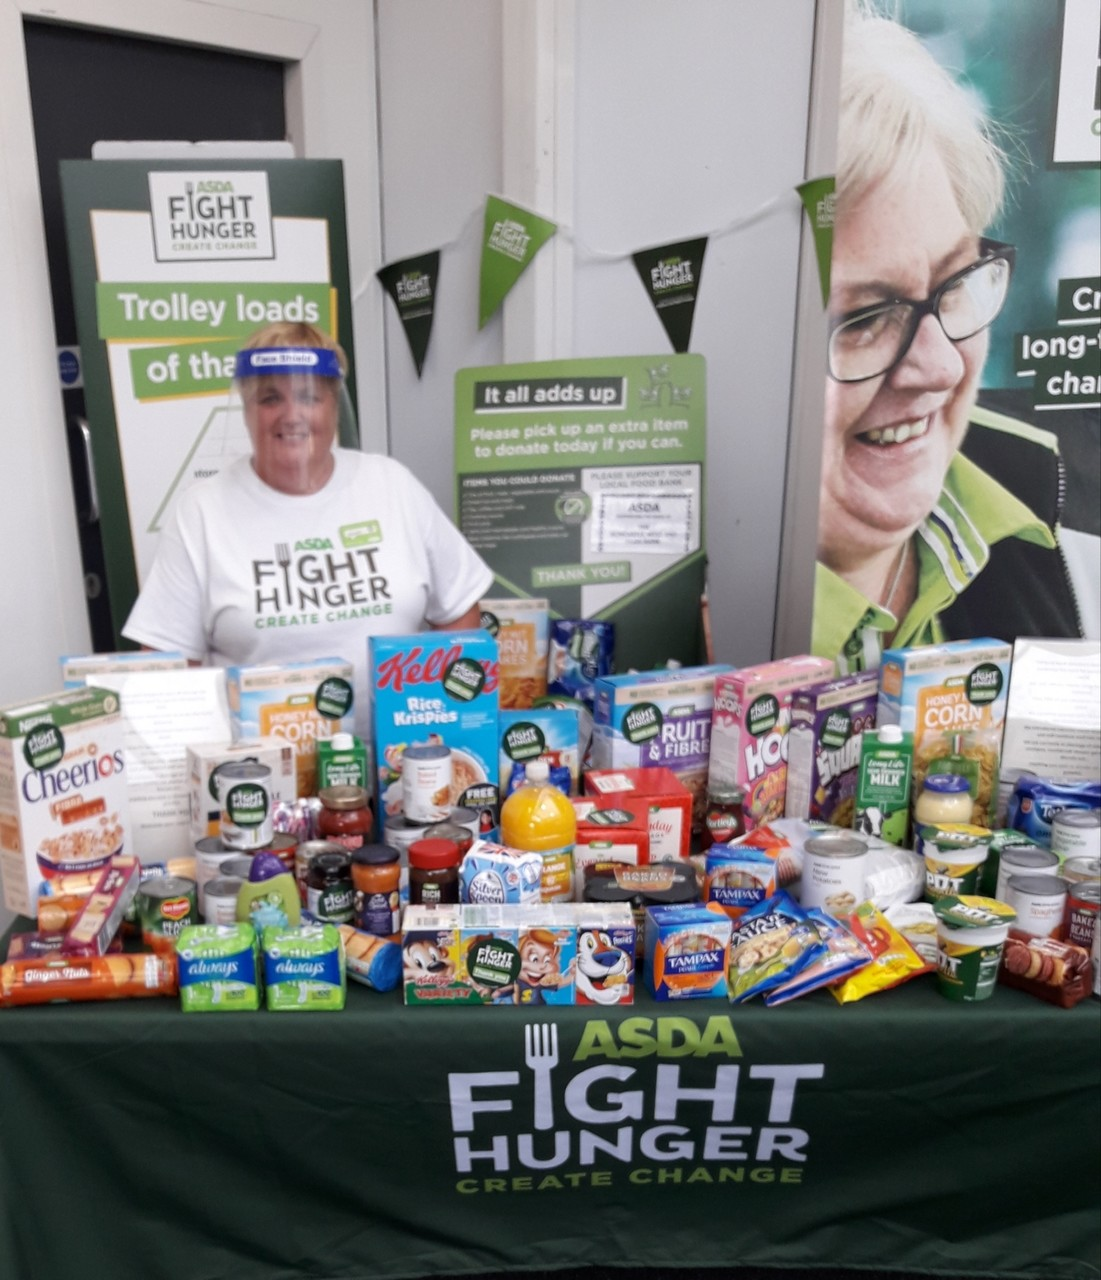 Chatting to customers about Fight Hunger Create Change | Asda Gosforth